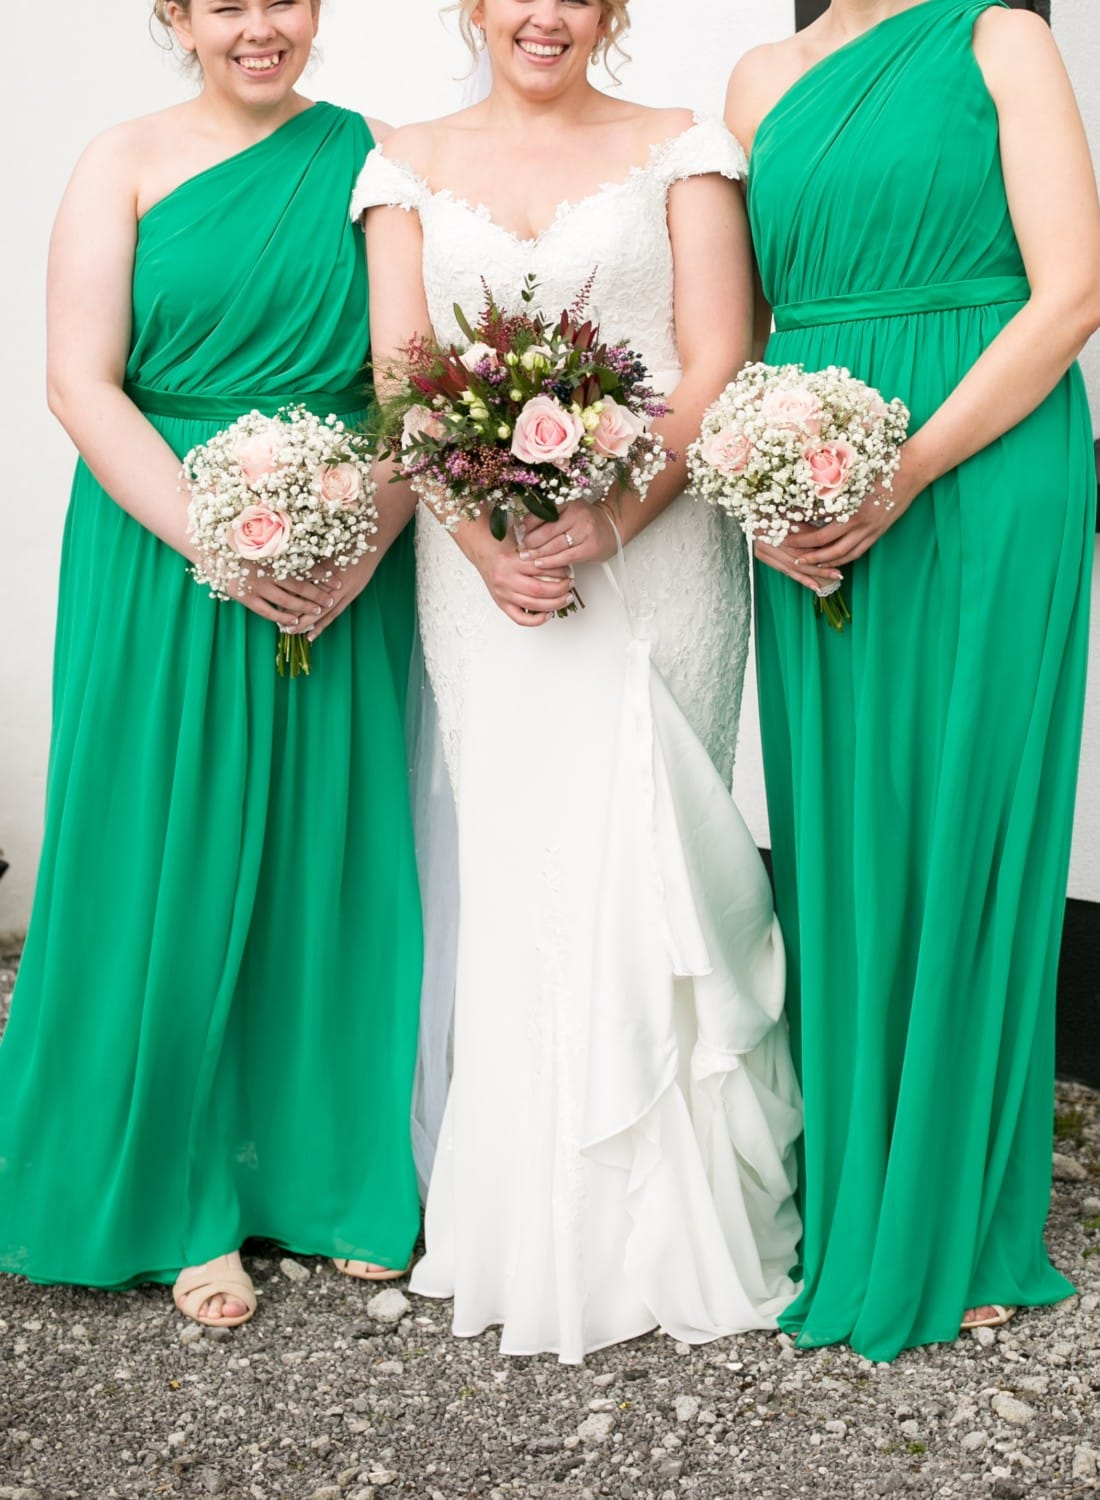 Where To Sell Wedding Dresses Of 2 Shamrock Green Bridesmaid Dresses Sell My Wedding